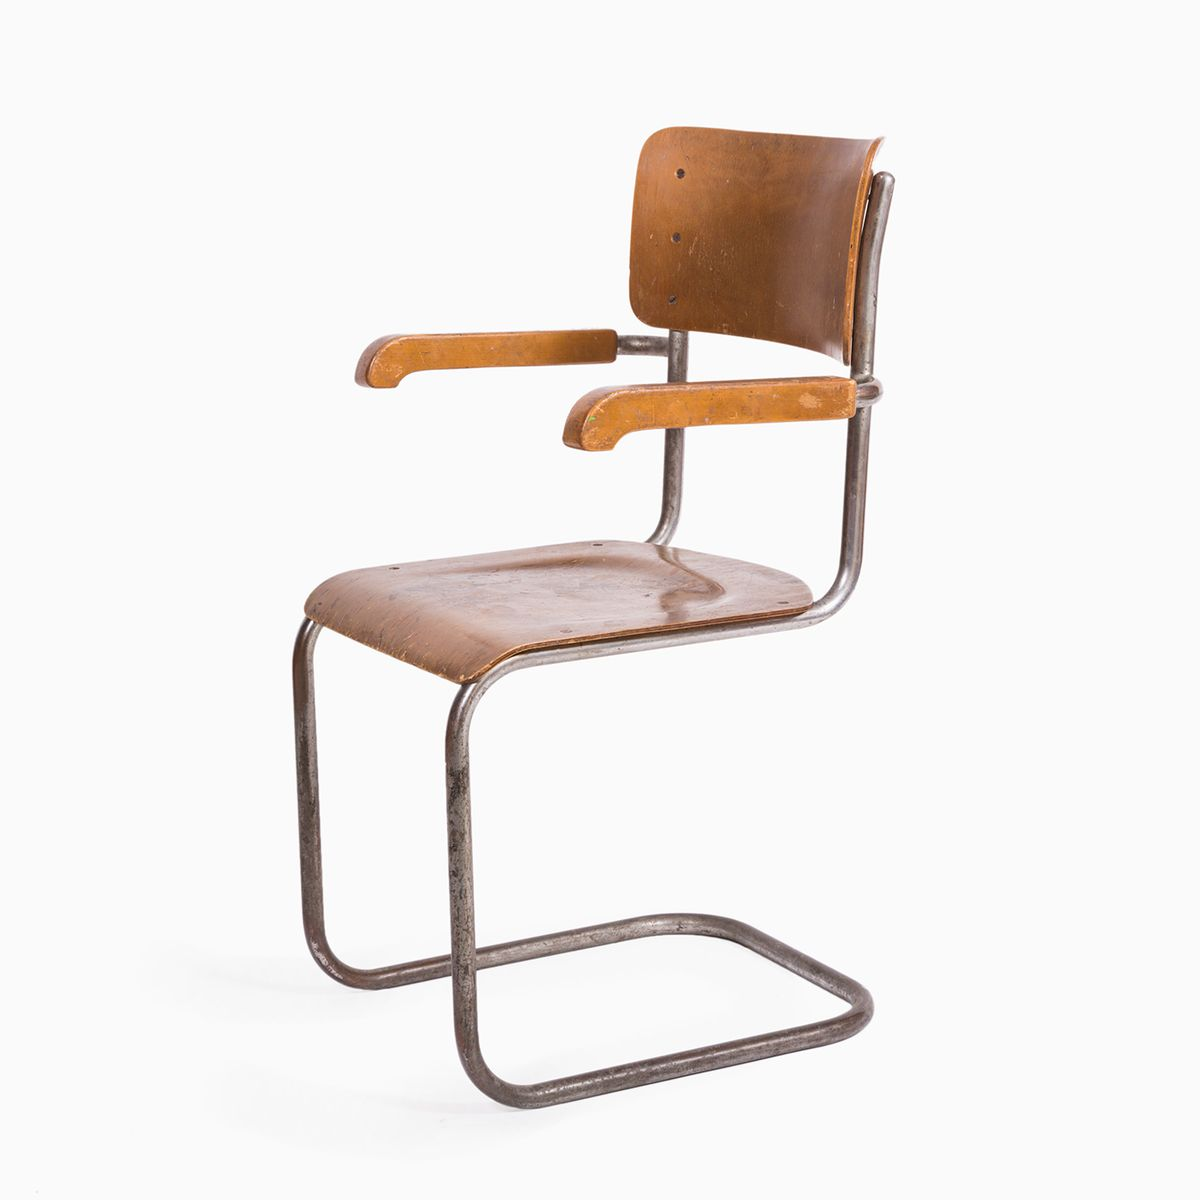 Mid century brown chair 1960s for sale at pamono for Z chair mid century